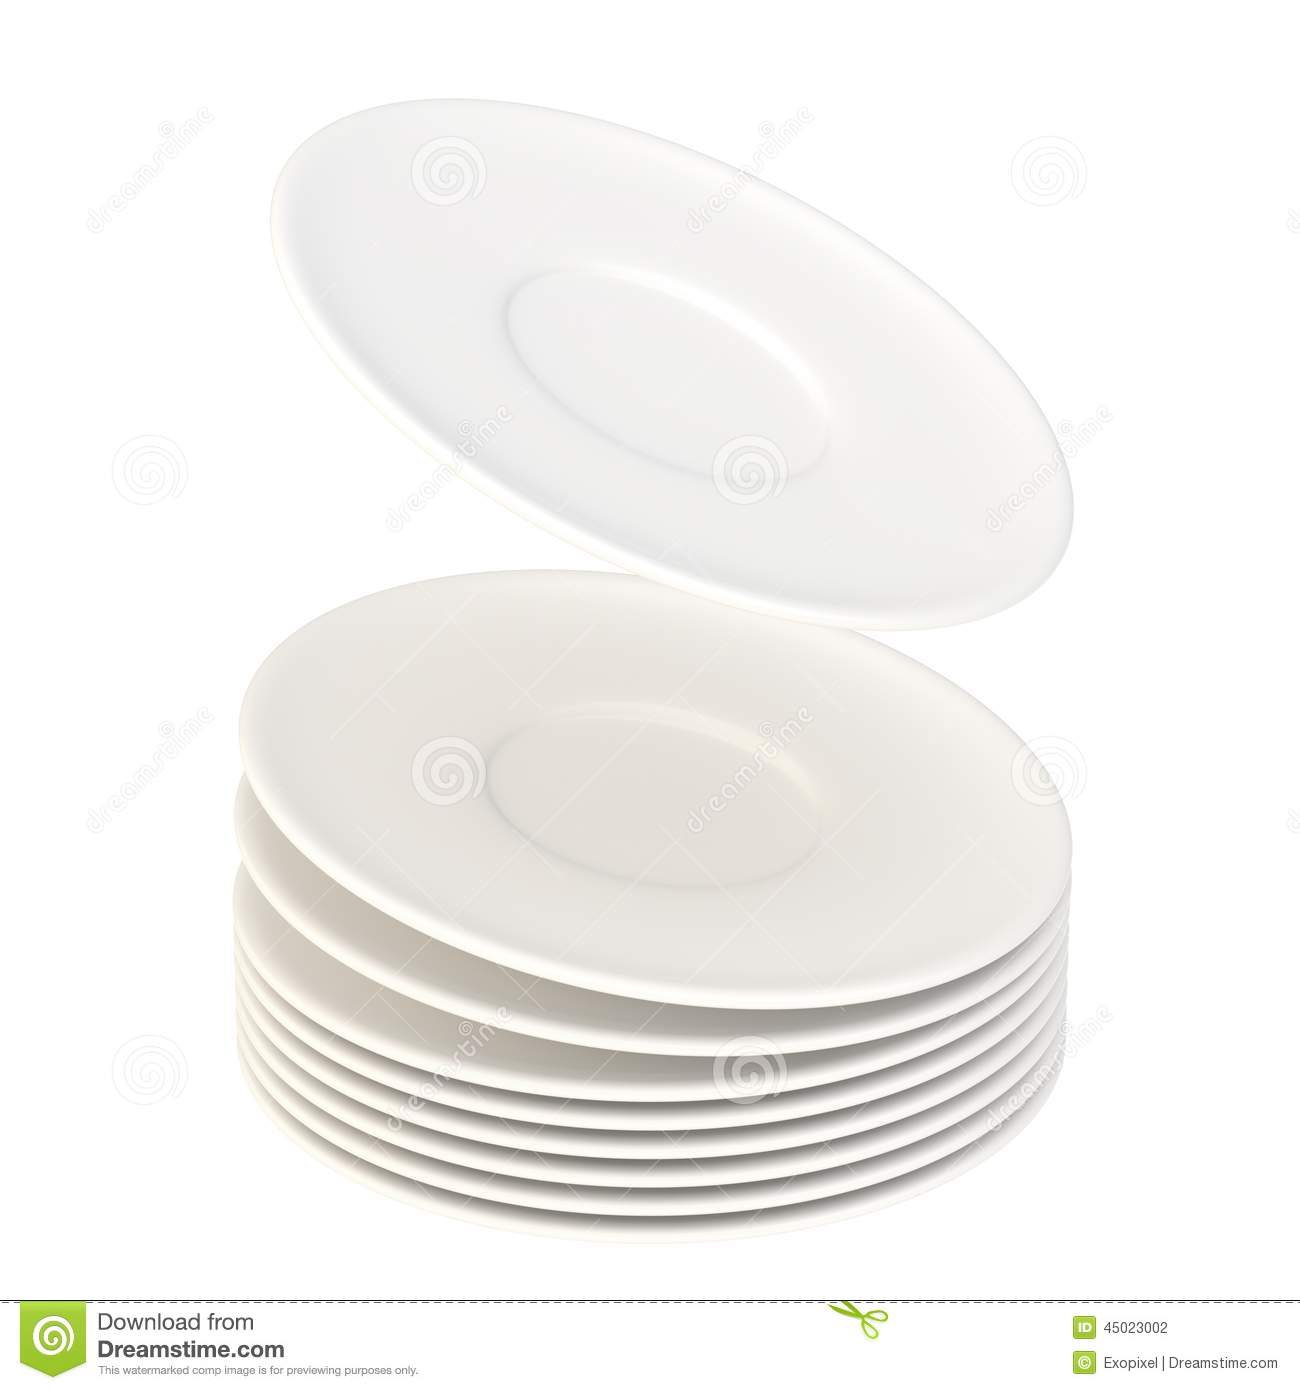 dynamic pile of ceramic plates isolated stock illustration. Black Bedroom Furniture Sets. Home Design Ideas